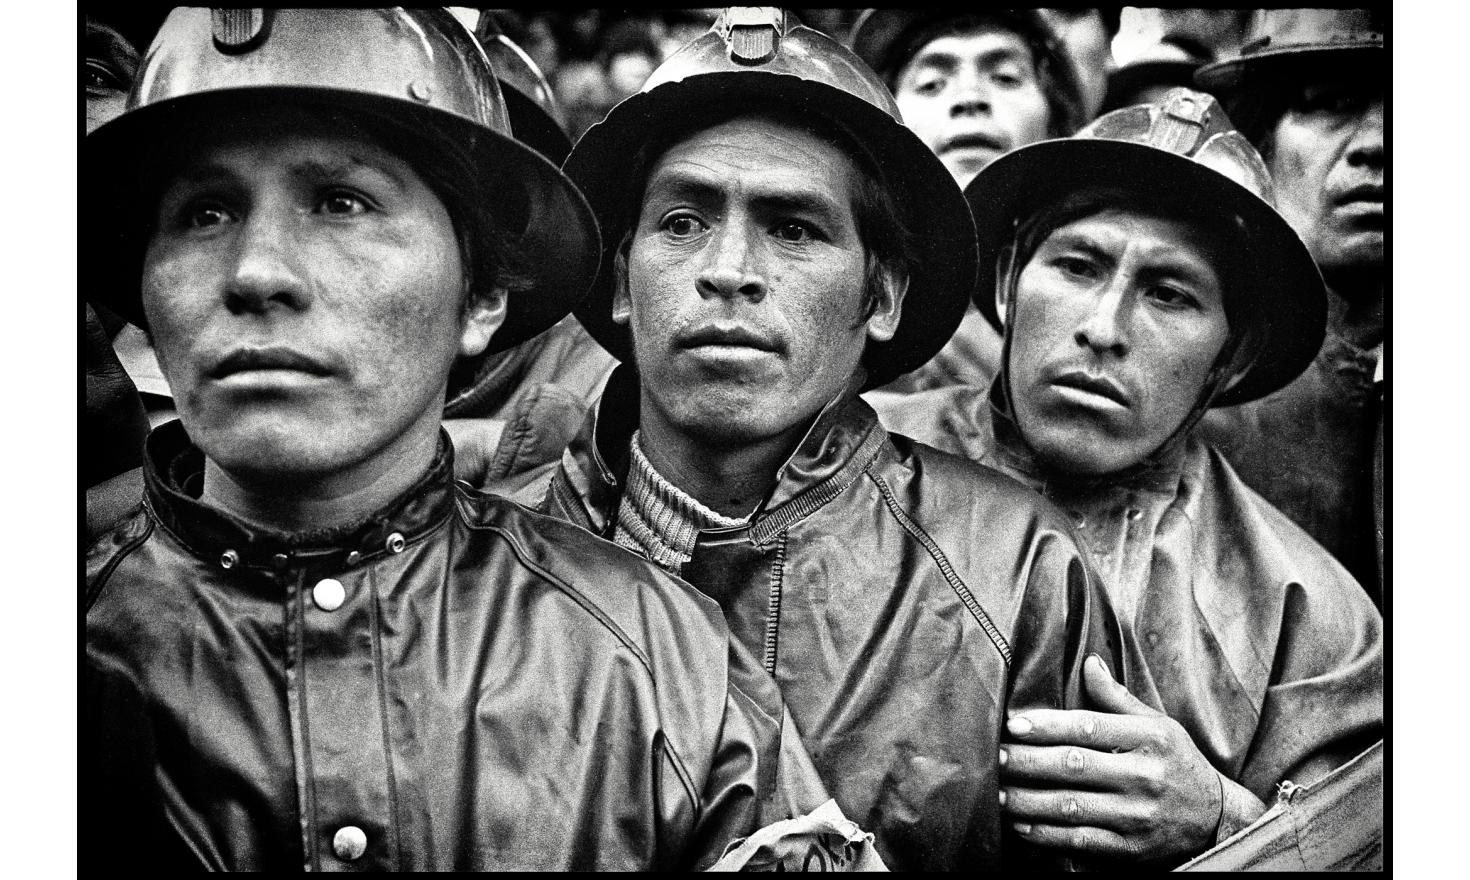 """A civilian, Hernan Siles Zuazo, is becoming president of Bolivia, after the military junta relinquished power.In the crowd, a delegation of miners coming to cheer """"their""""President. La Paz, Bolivia. October 10, 1982"""